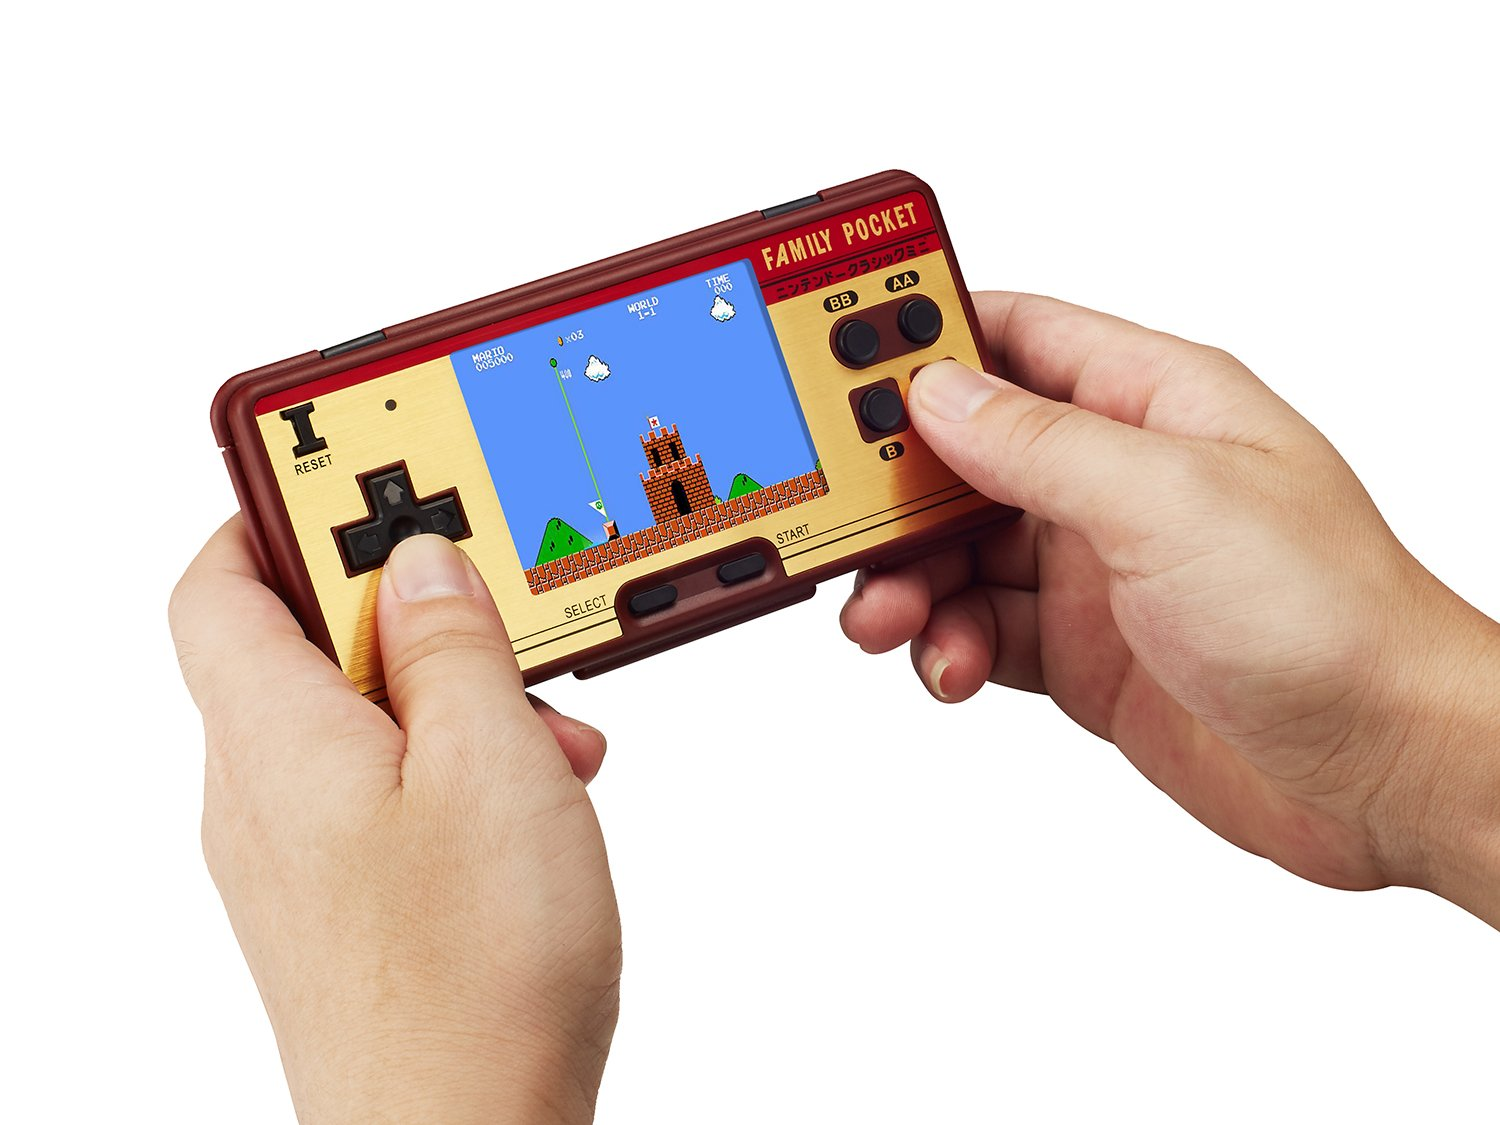 KISTORE Handheld Game Console, Game Console 3 Inch 638 Games Retro FC Game Player Classic Game Console, Birthday Presents for Children